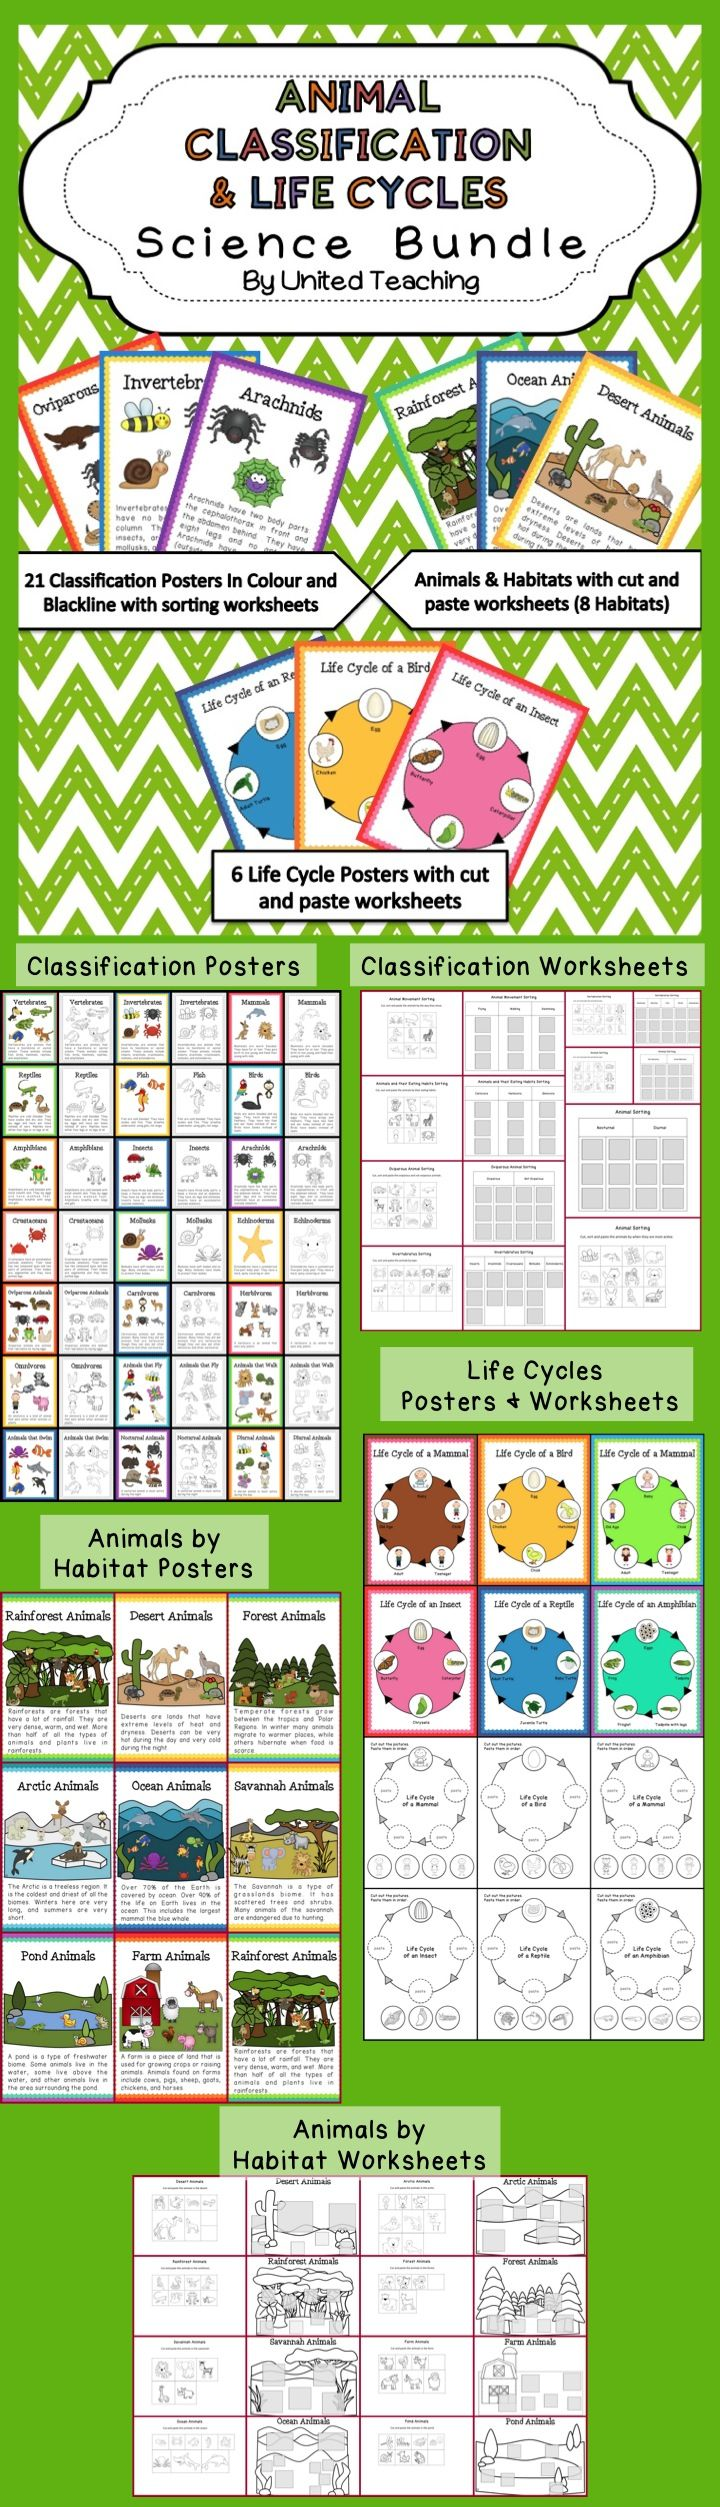 Worksheets Animal Classification Worksheet best 25 animal classification worksheet ideas on pinterest life cycles science bundle